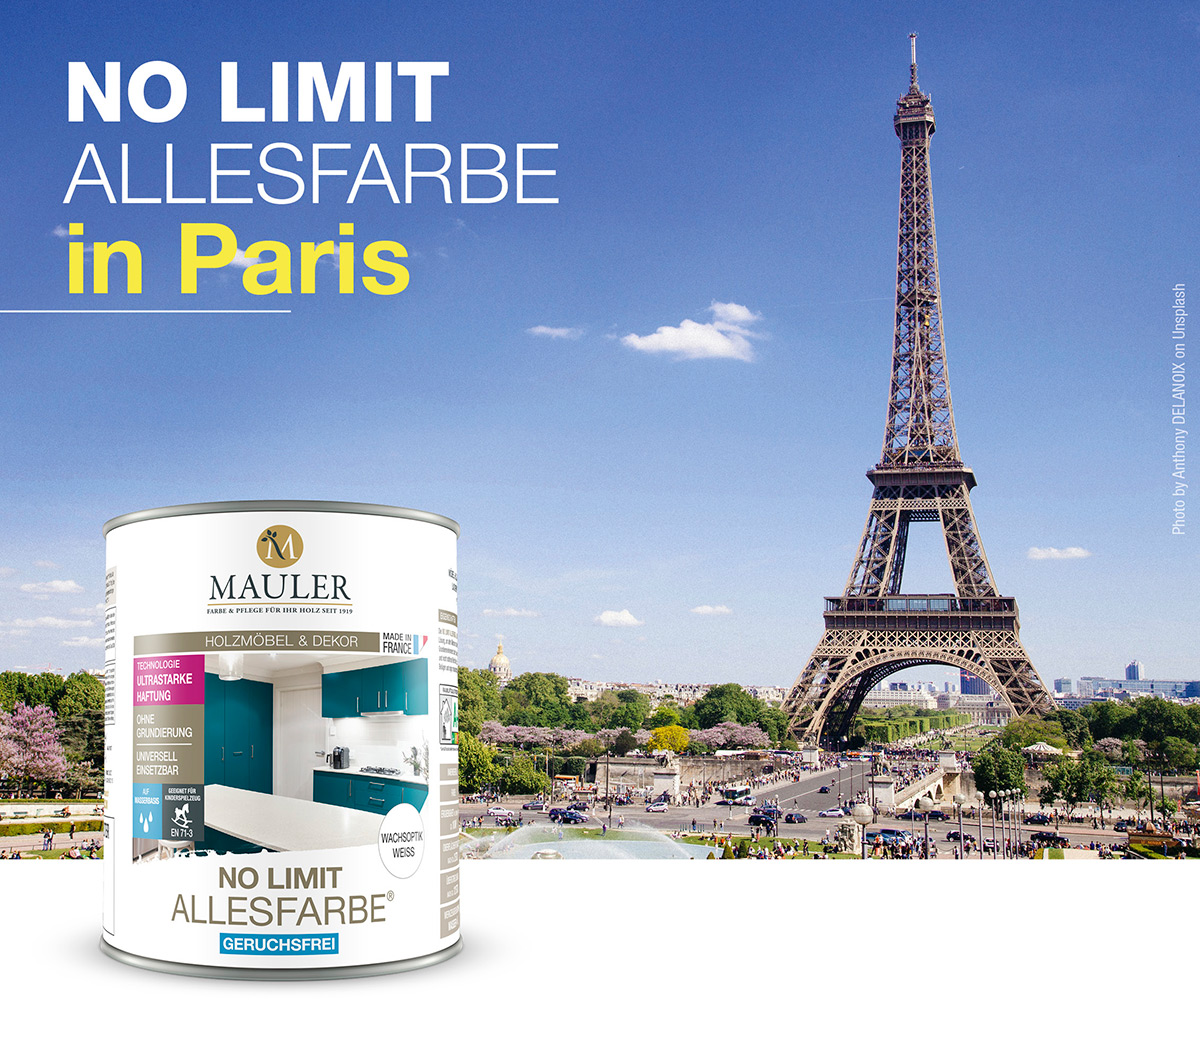 Unsere No Limit Allesfarbe erobert Paris!